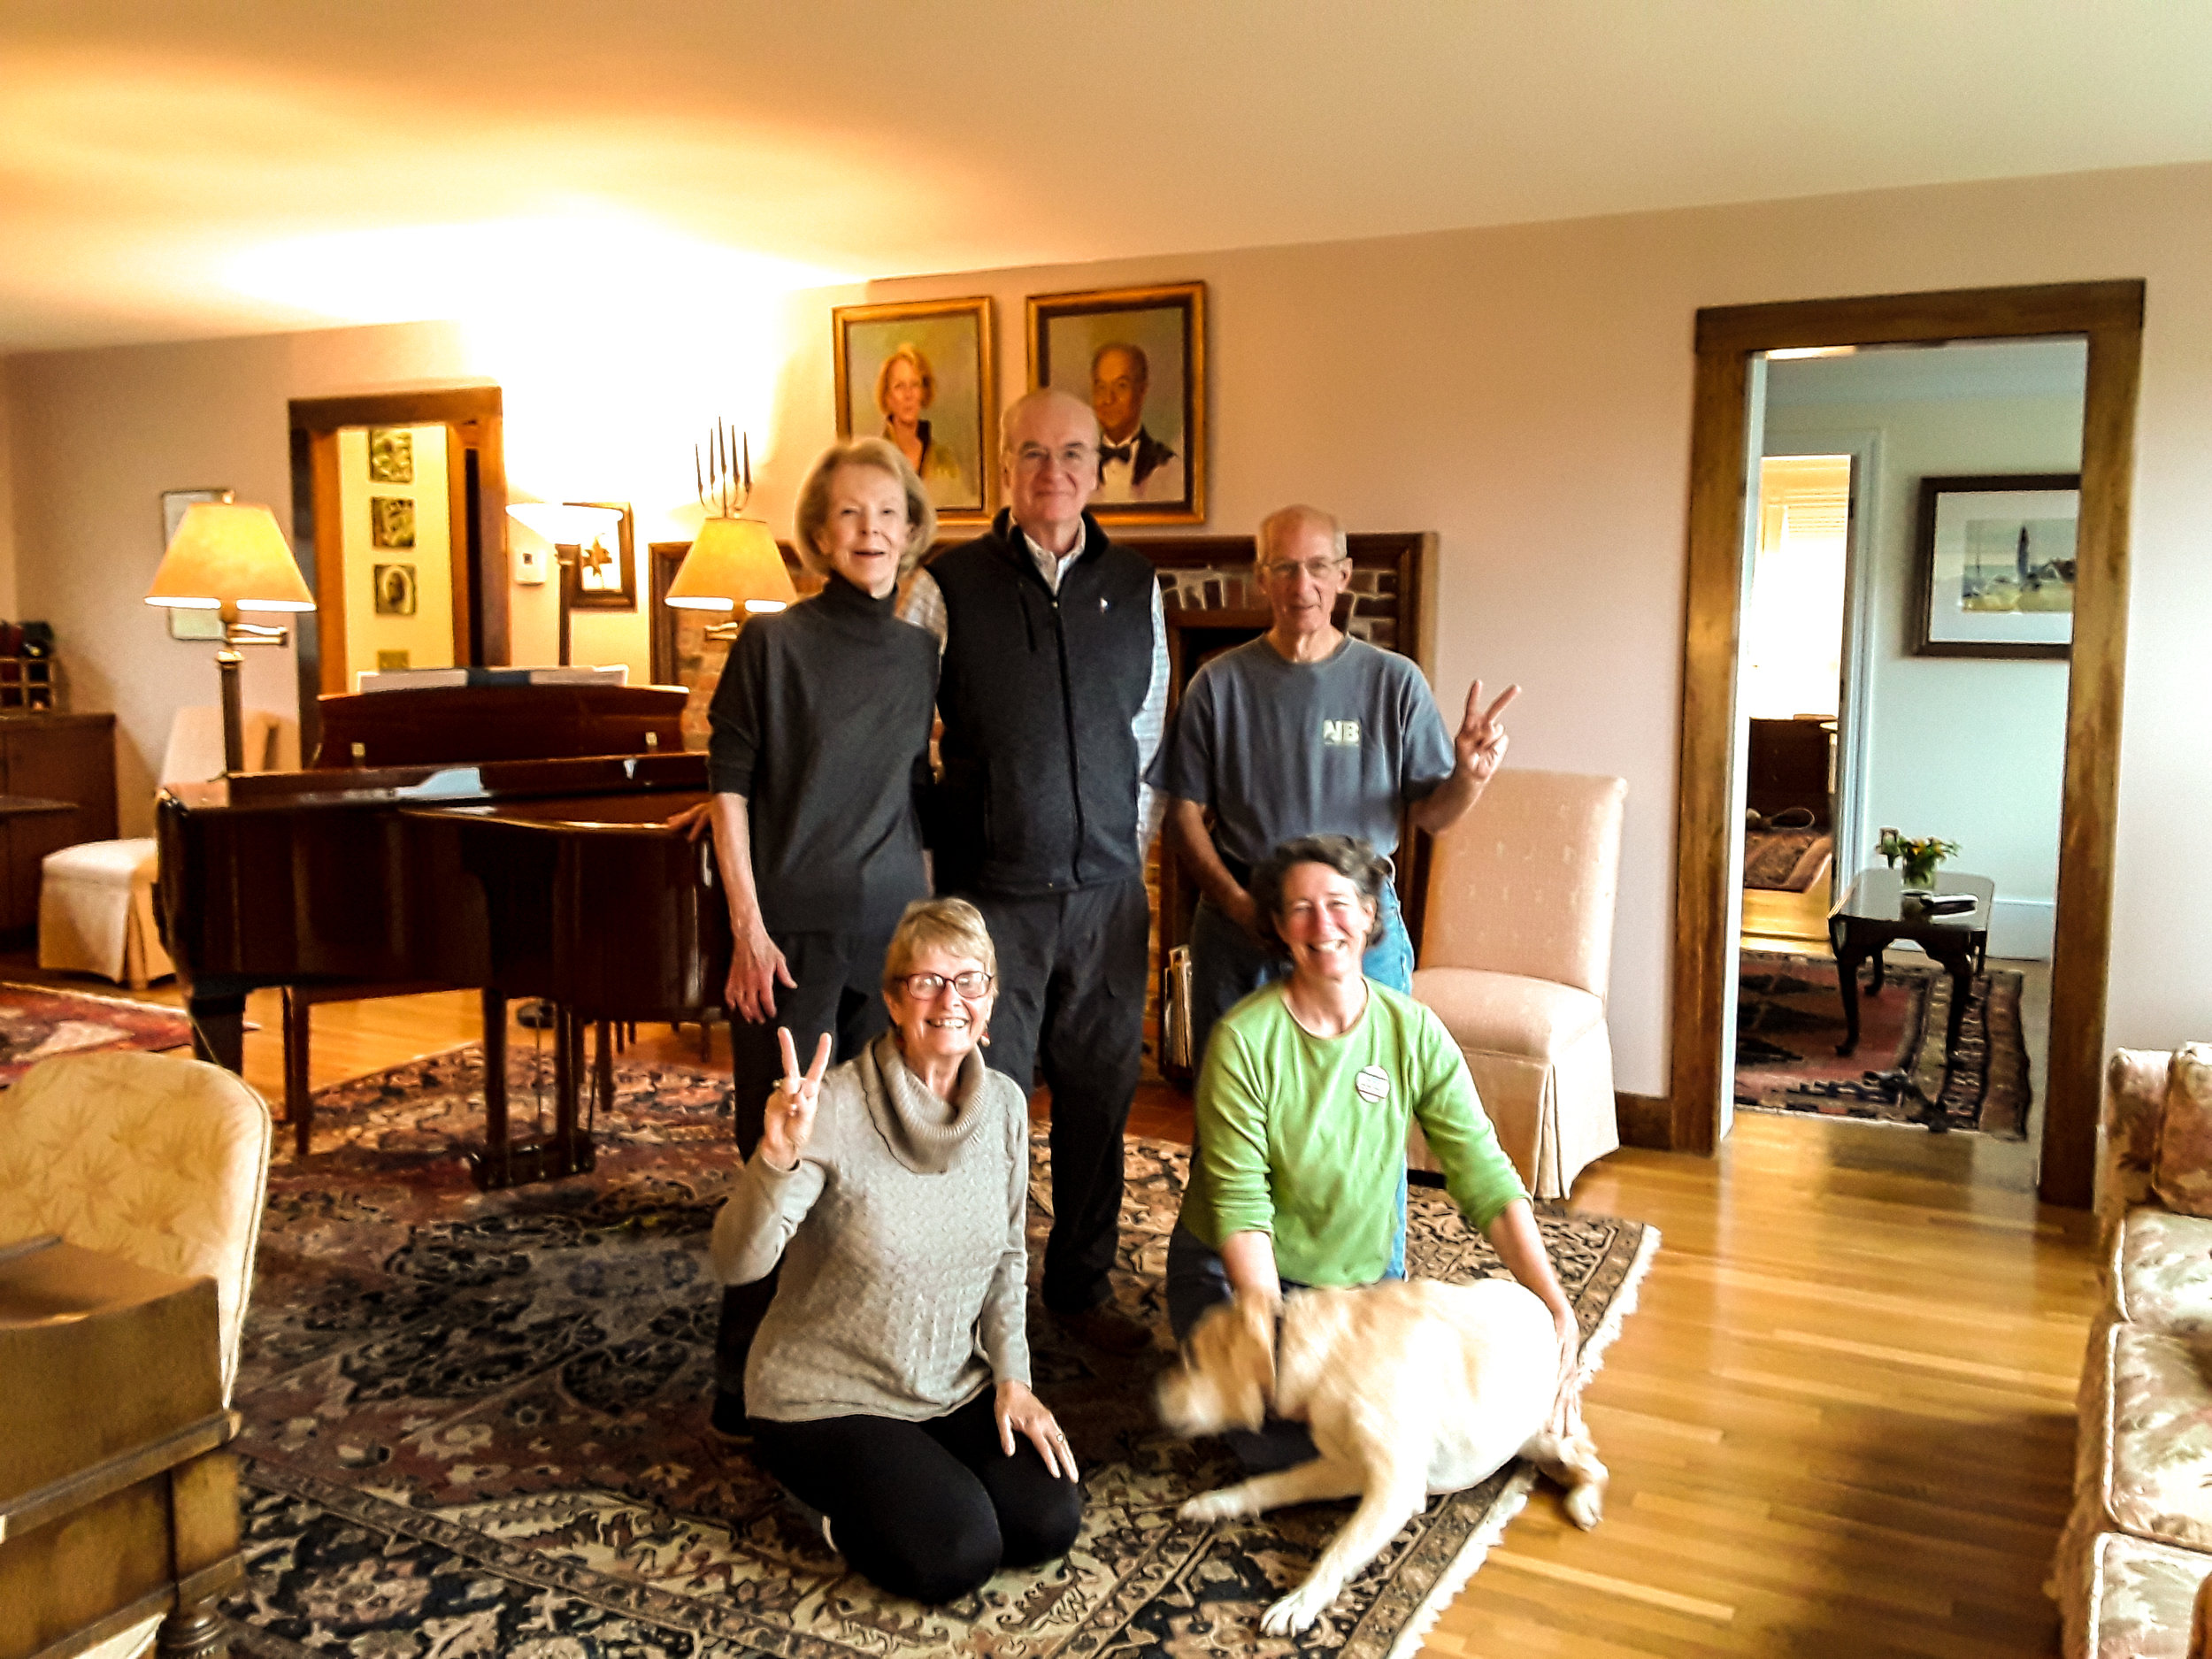 Hosts Betty LaStaiti and Edward Dufresne (back left) with Team Golden members Vic Mailey, Bettina Borders, Bess Coughlin, and unnamed emotional support dog…